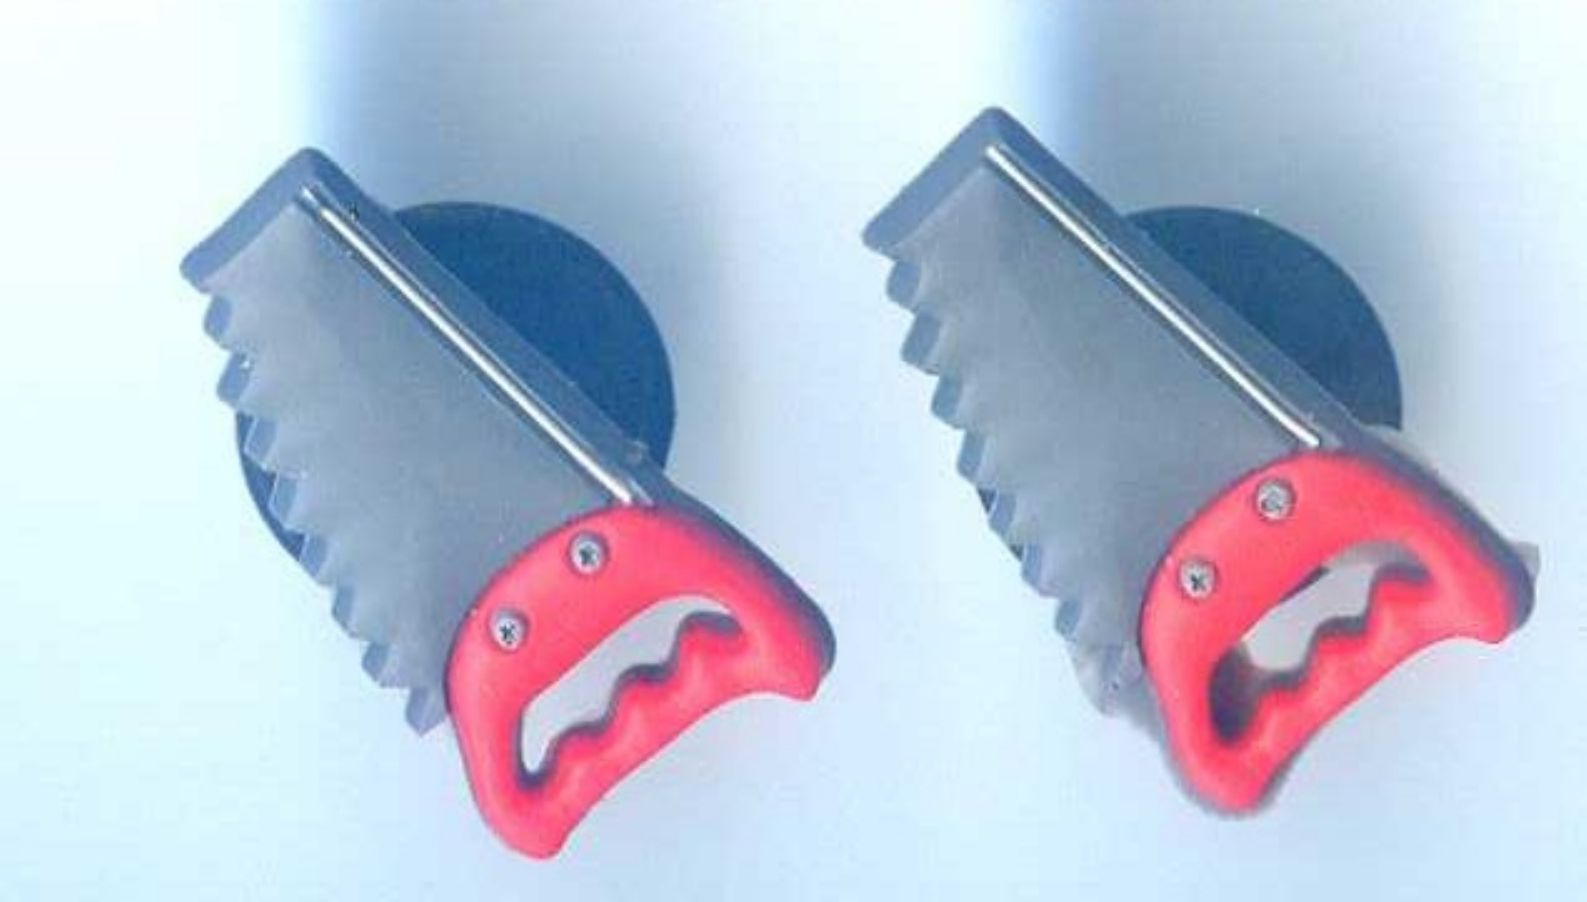 CROCS SHOE CLOGS CHARMS DIY Tool Handsaw Red Handle 1 Pair 2pc